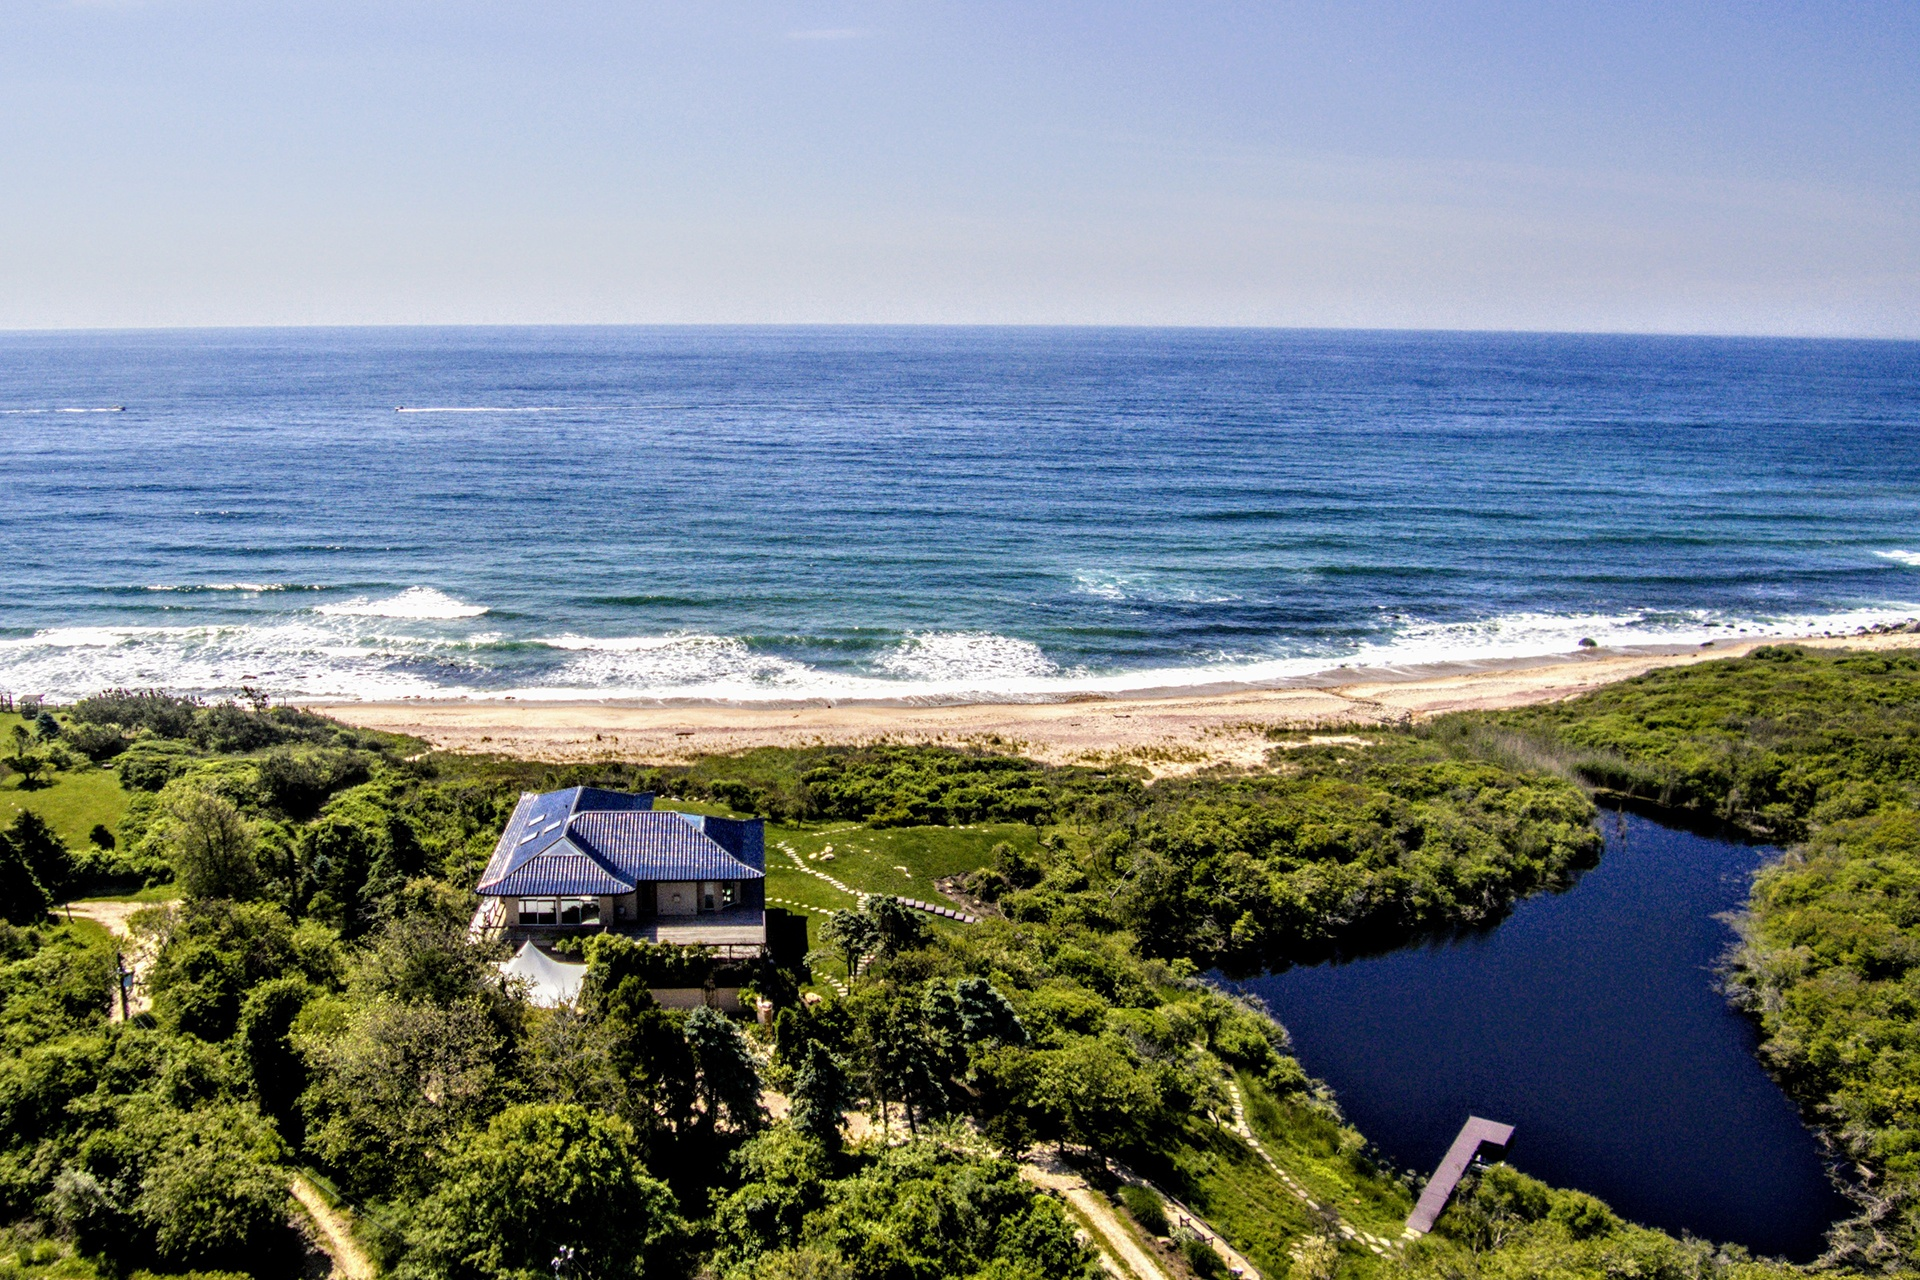 An aerial vantage underscores the expansiveness of the home's private beach.